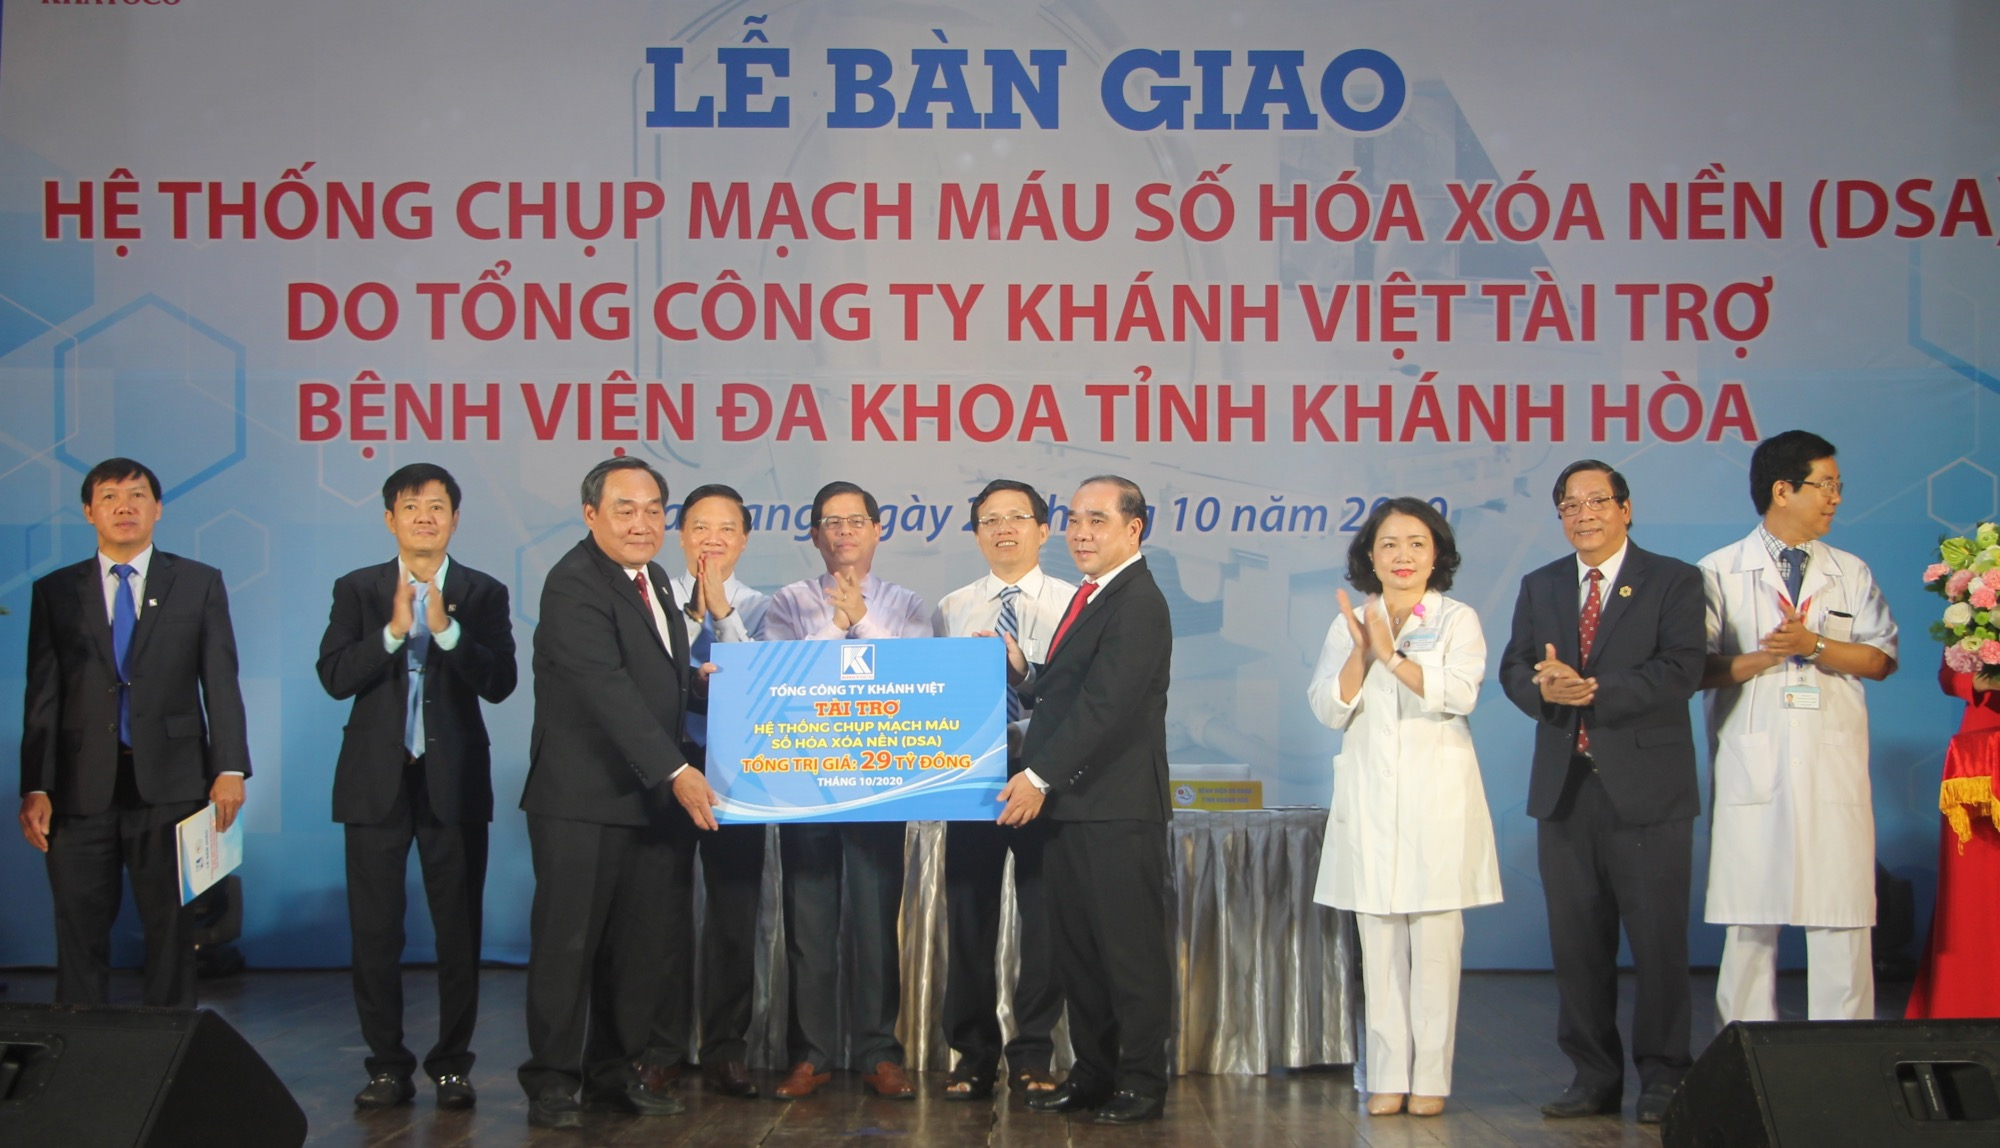 Khatoco donates DSA to Khanh Hoa General Hospital